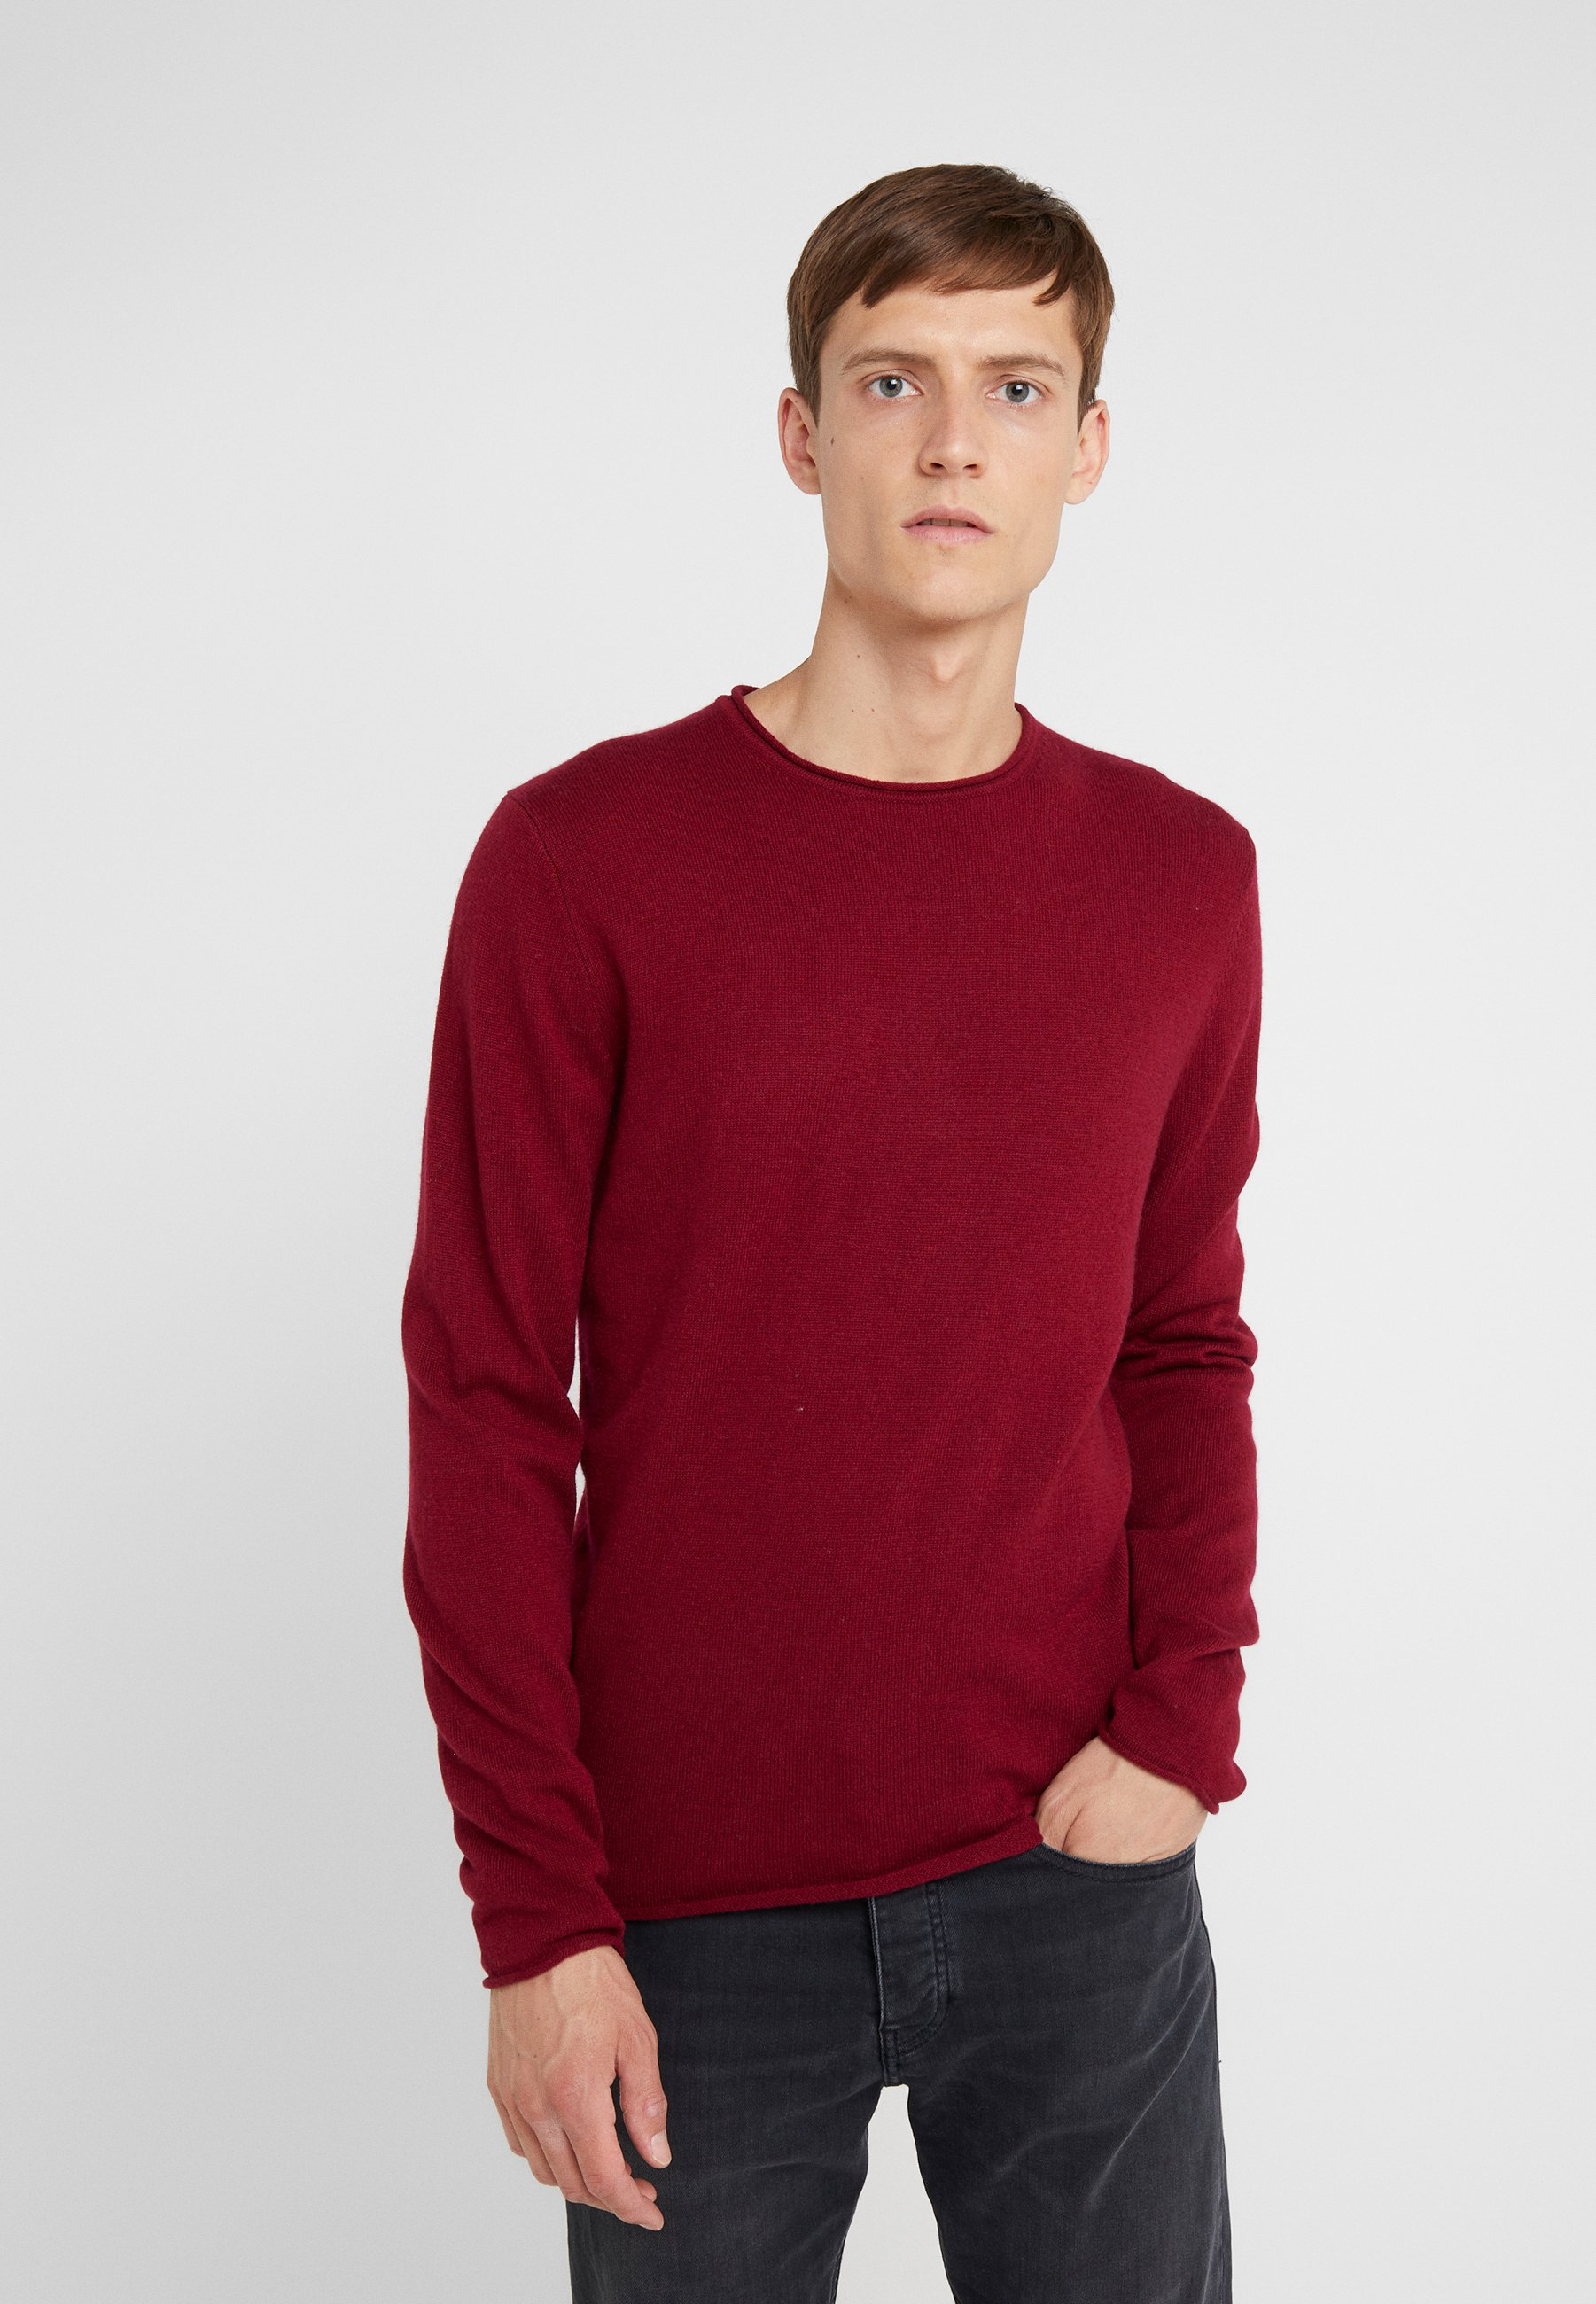 Cashmere Ftc Ftc Cashmere PulloverPinot Ftc PulloverPinot Cashmere Cashmere PulloverPinot Ftc PulloverPinot PulloverPinot Ftc Ftc Cashmere wk0OP8n